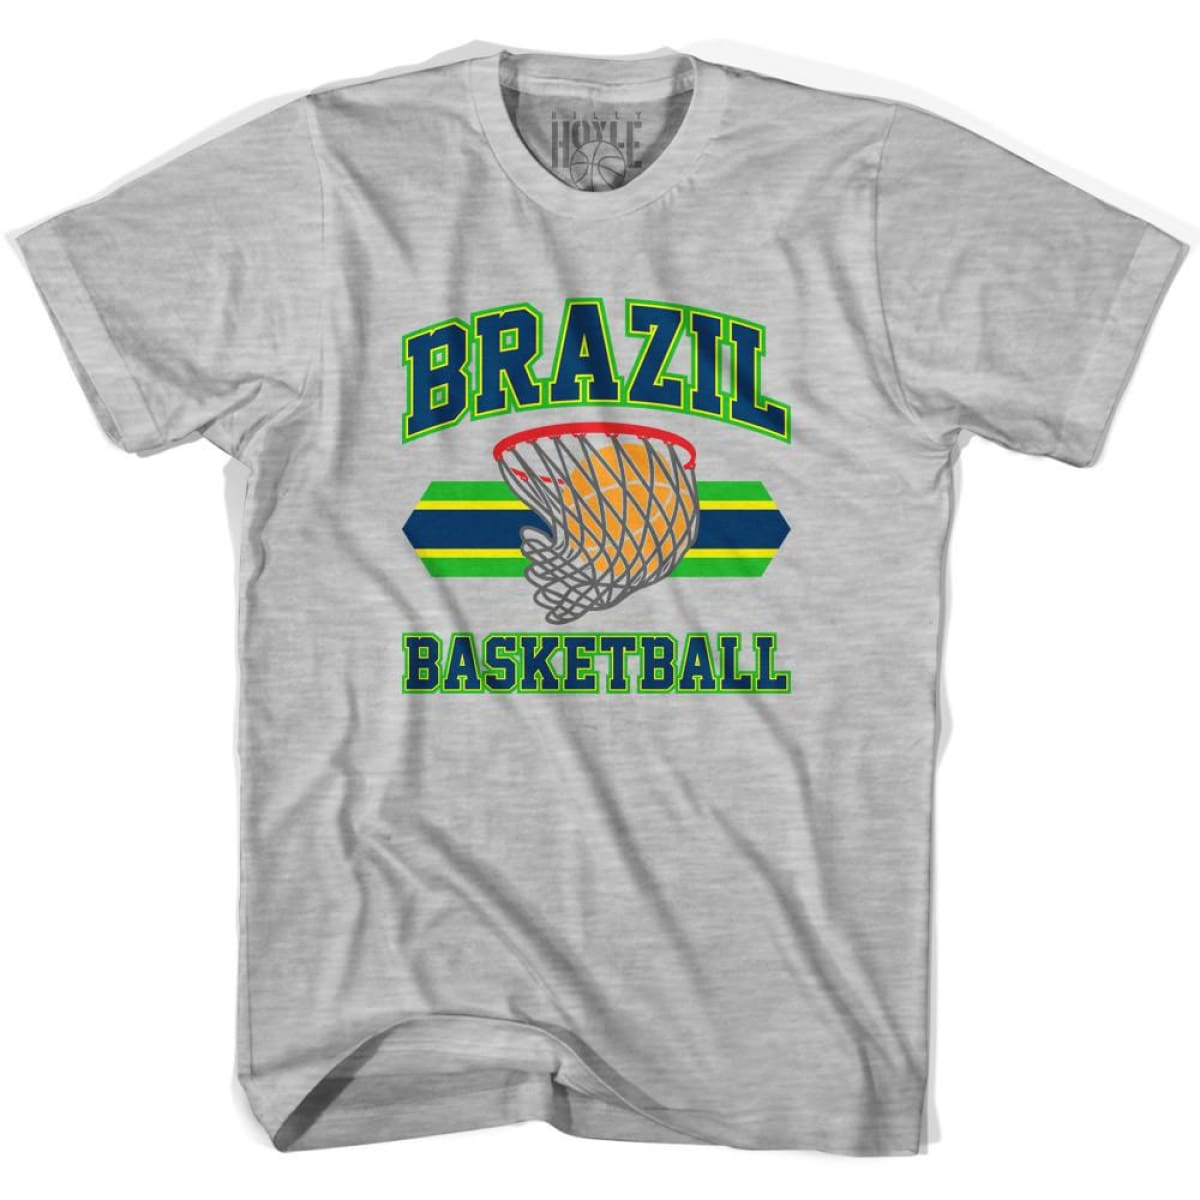 Brazil 90s Basketball T-shirts - Grey Heather / Youth X-Small - Basketball T-shirt